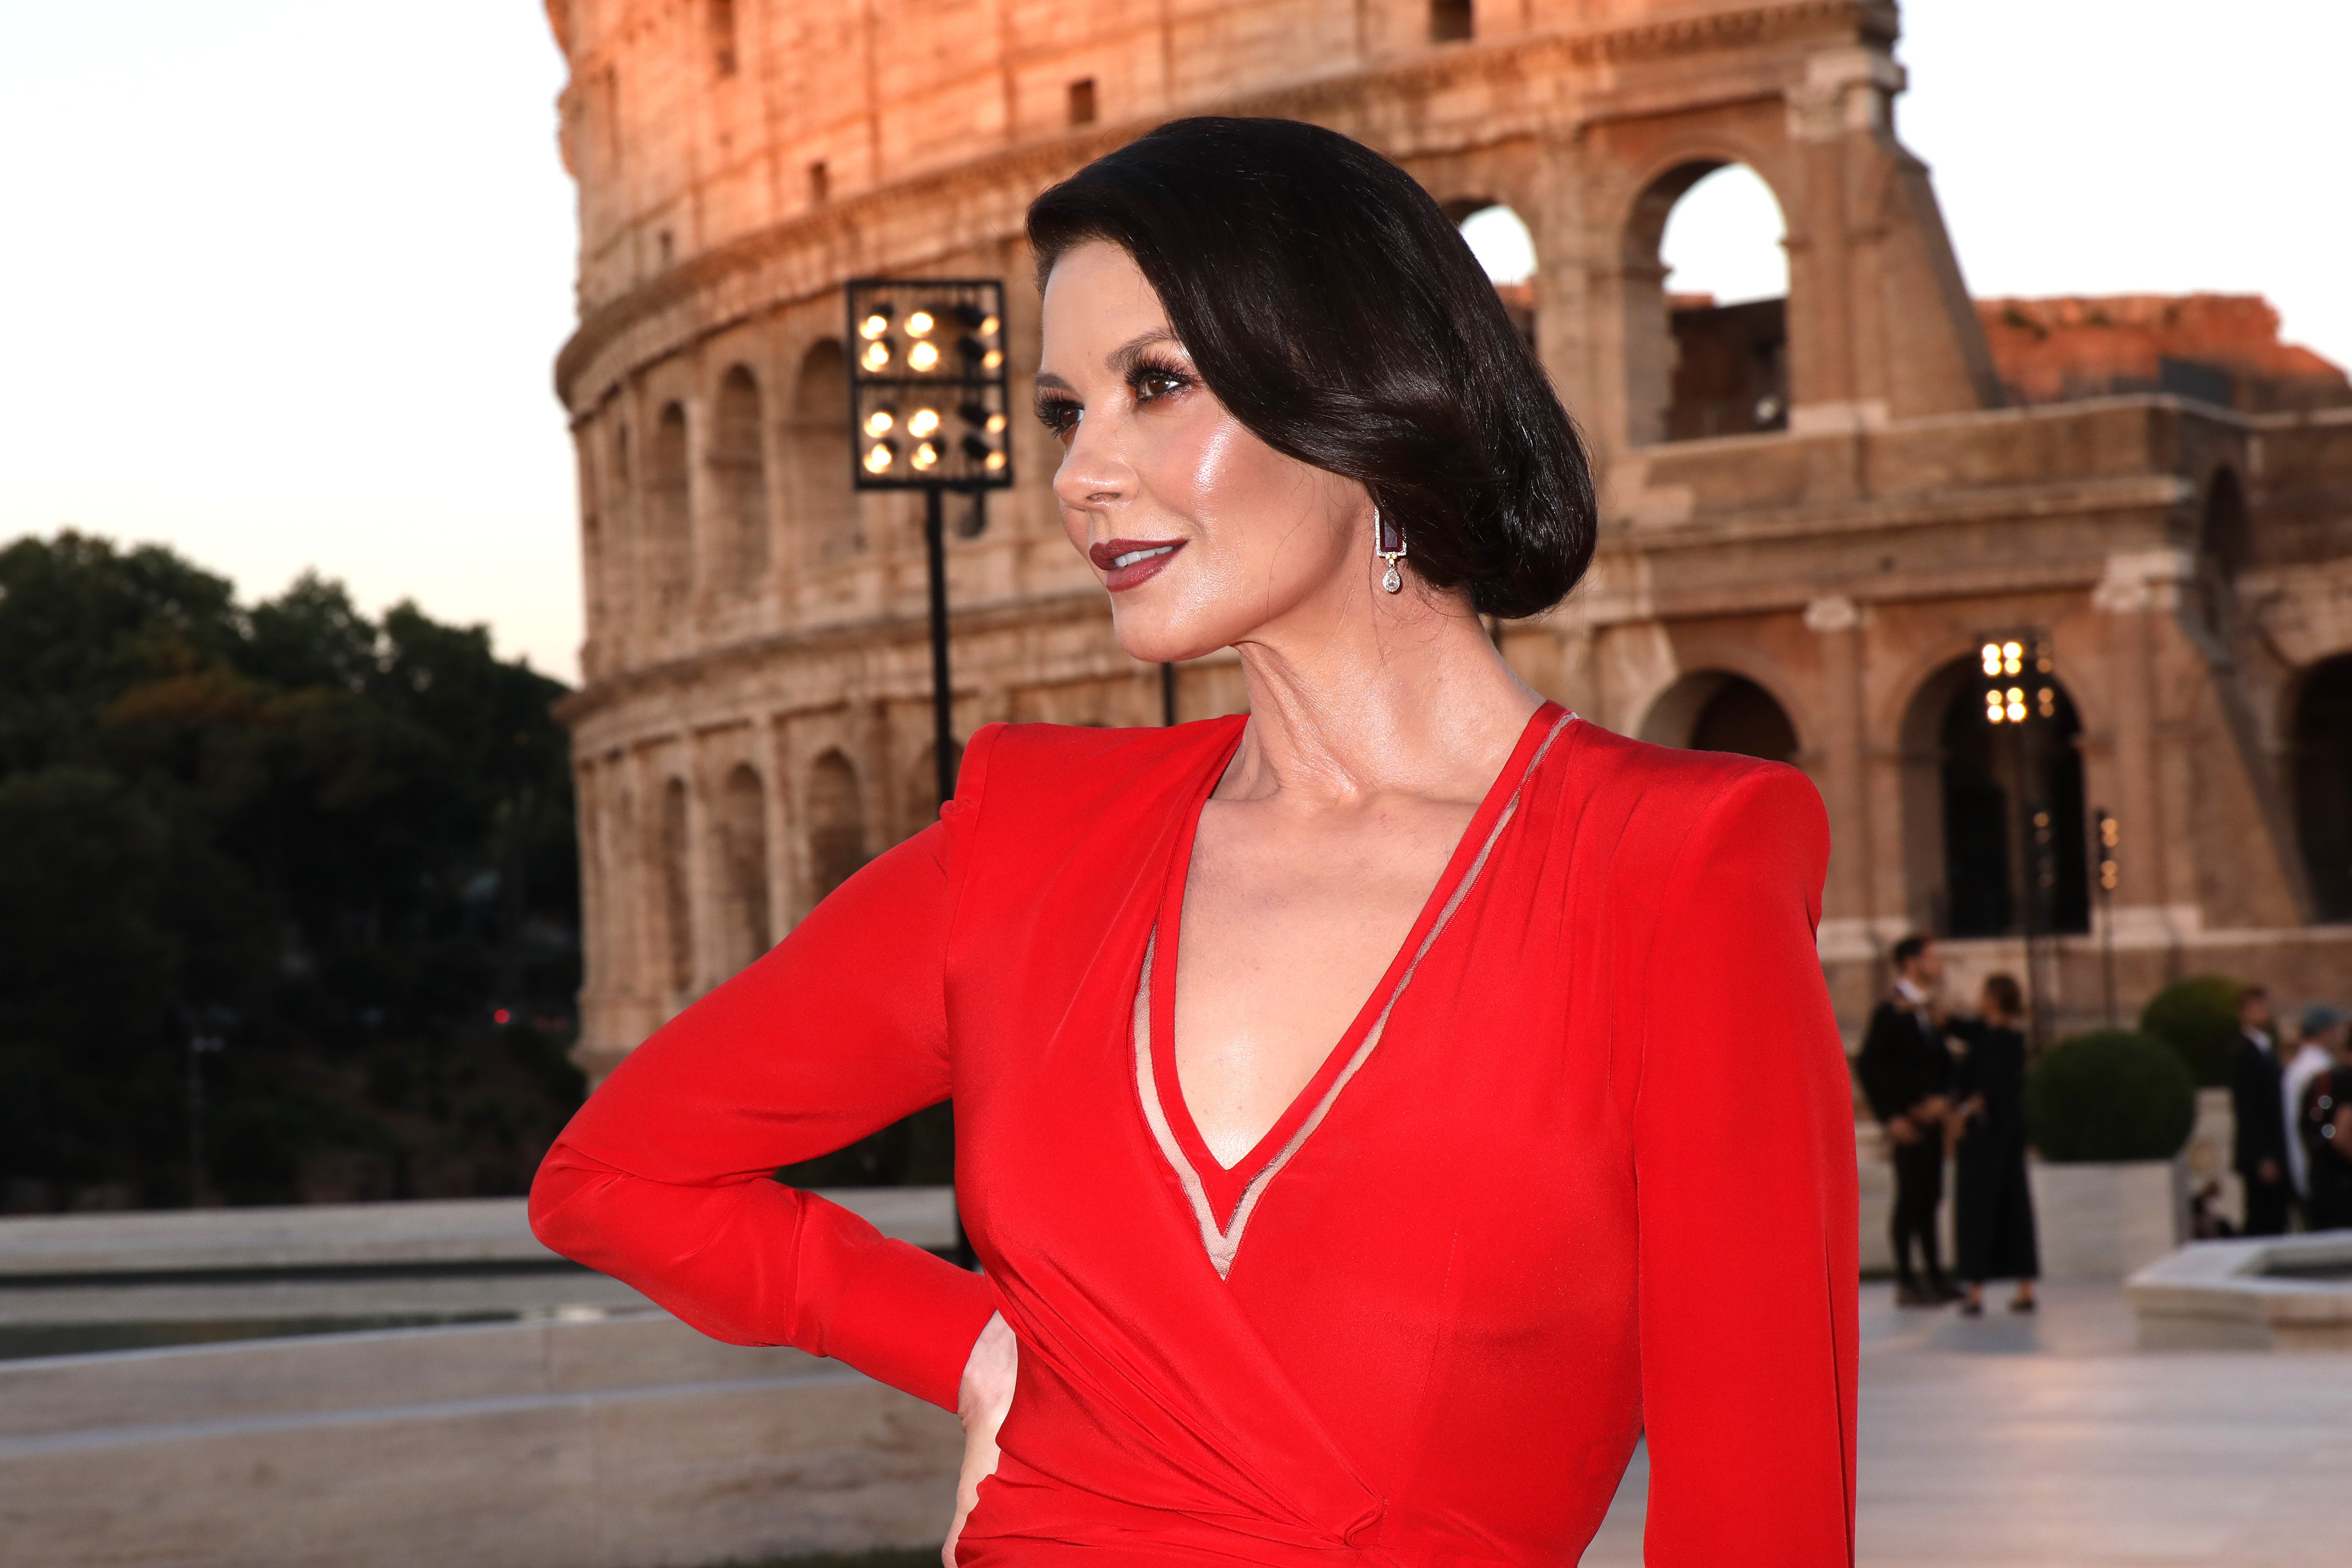 Image Credits: Getty Images / Elisabetta Villa | Catherine Zeta Jones attends the Cocktail at Fendi Couture Fall Winter 2019/2020 on July 04, 2019 in Rome, Italy.